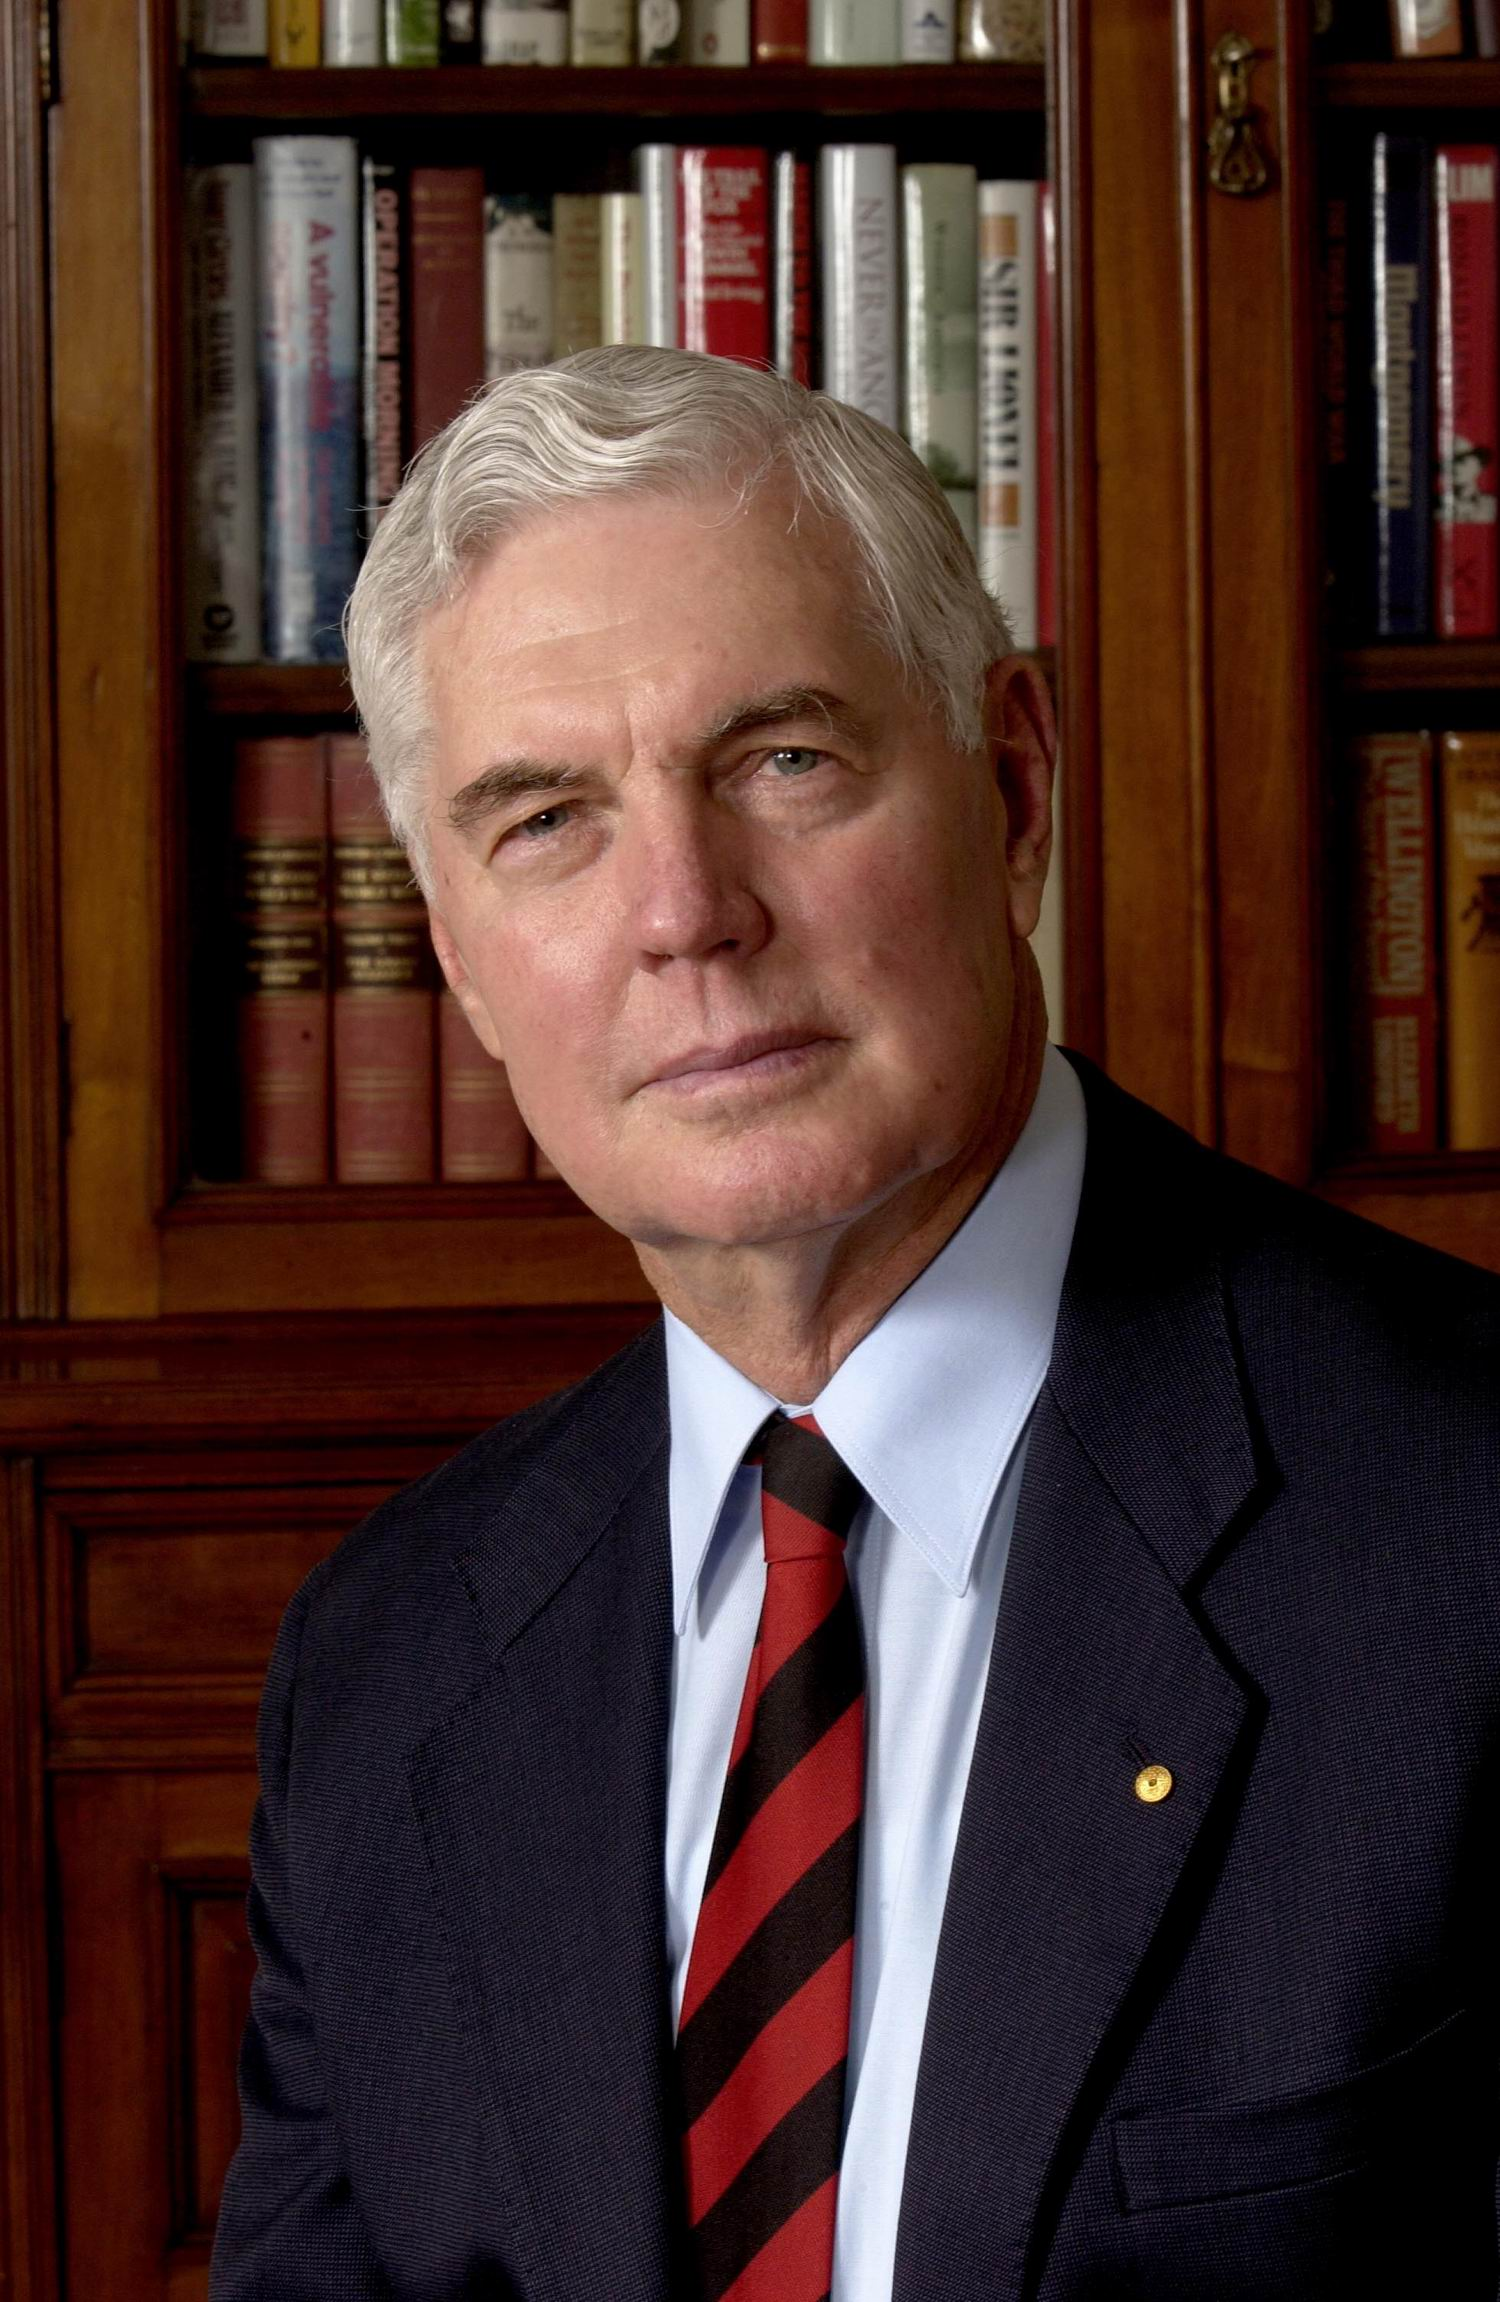 Major_General_The_Honourable_Michael_Jeffery.jpg